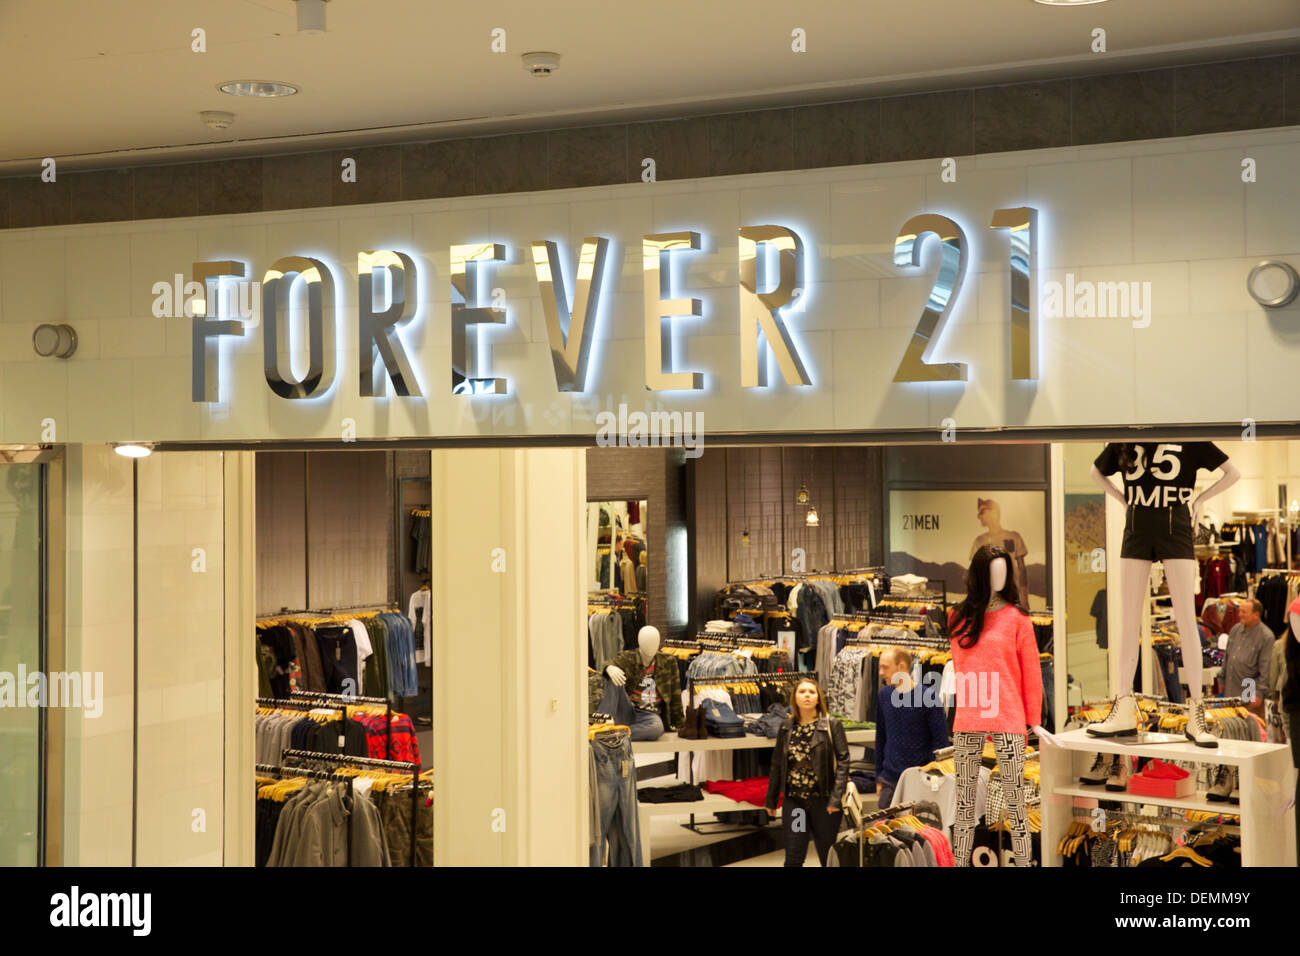 Forever 21 Shop Front Stock Photo 60691287 Alamy